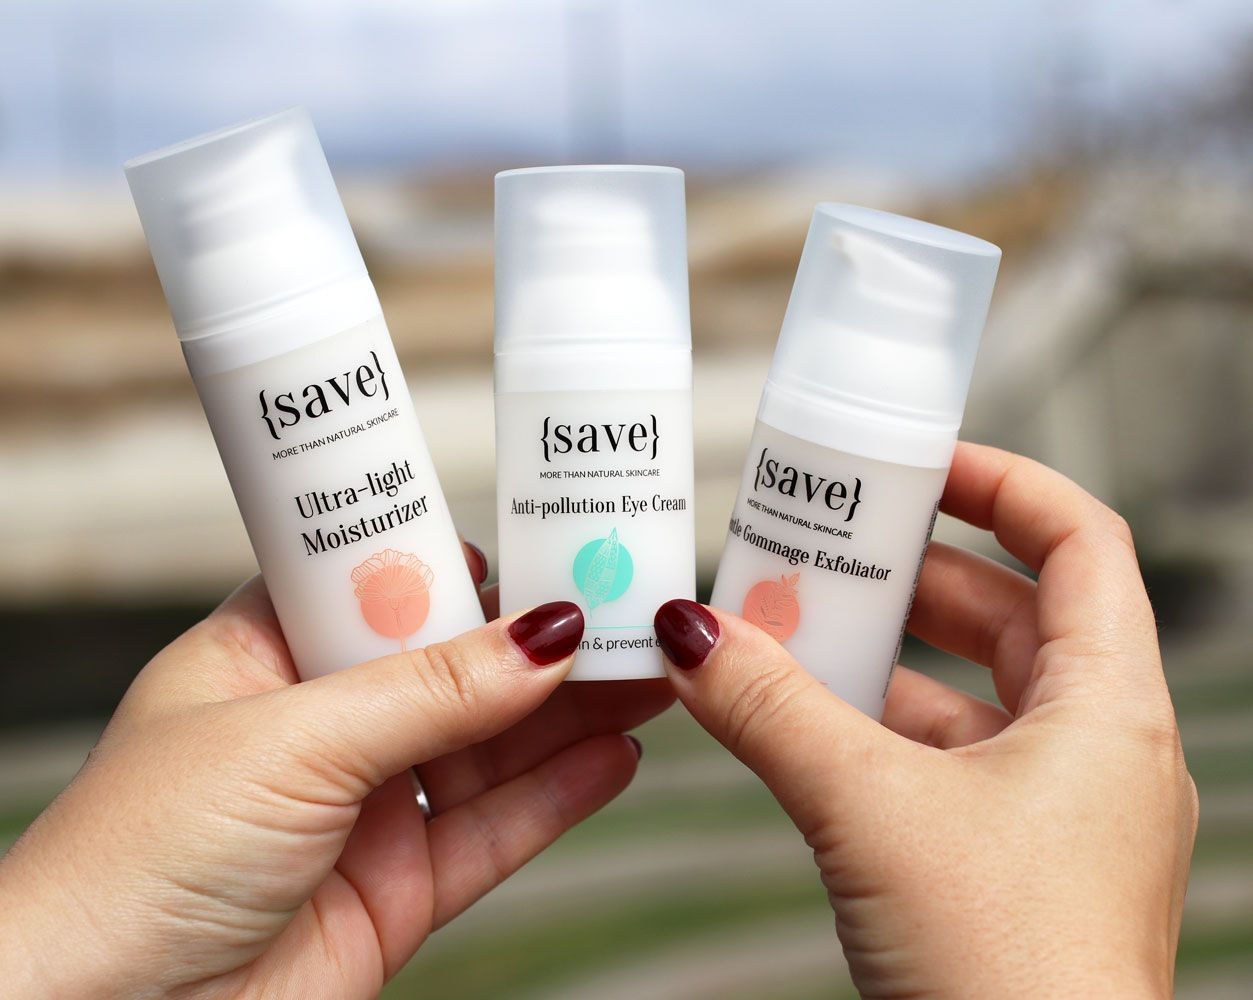 #savepartner I know everyone is feeling stressed right now. I hope I can alleviate that with this amazing clean beauty, cruelty free skincare giveaway from {save}. One lucky winner will win a huge haul PLUS a $50 Amazon gift card!